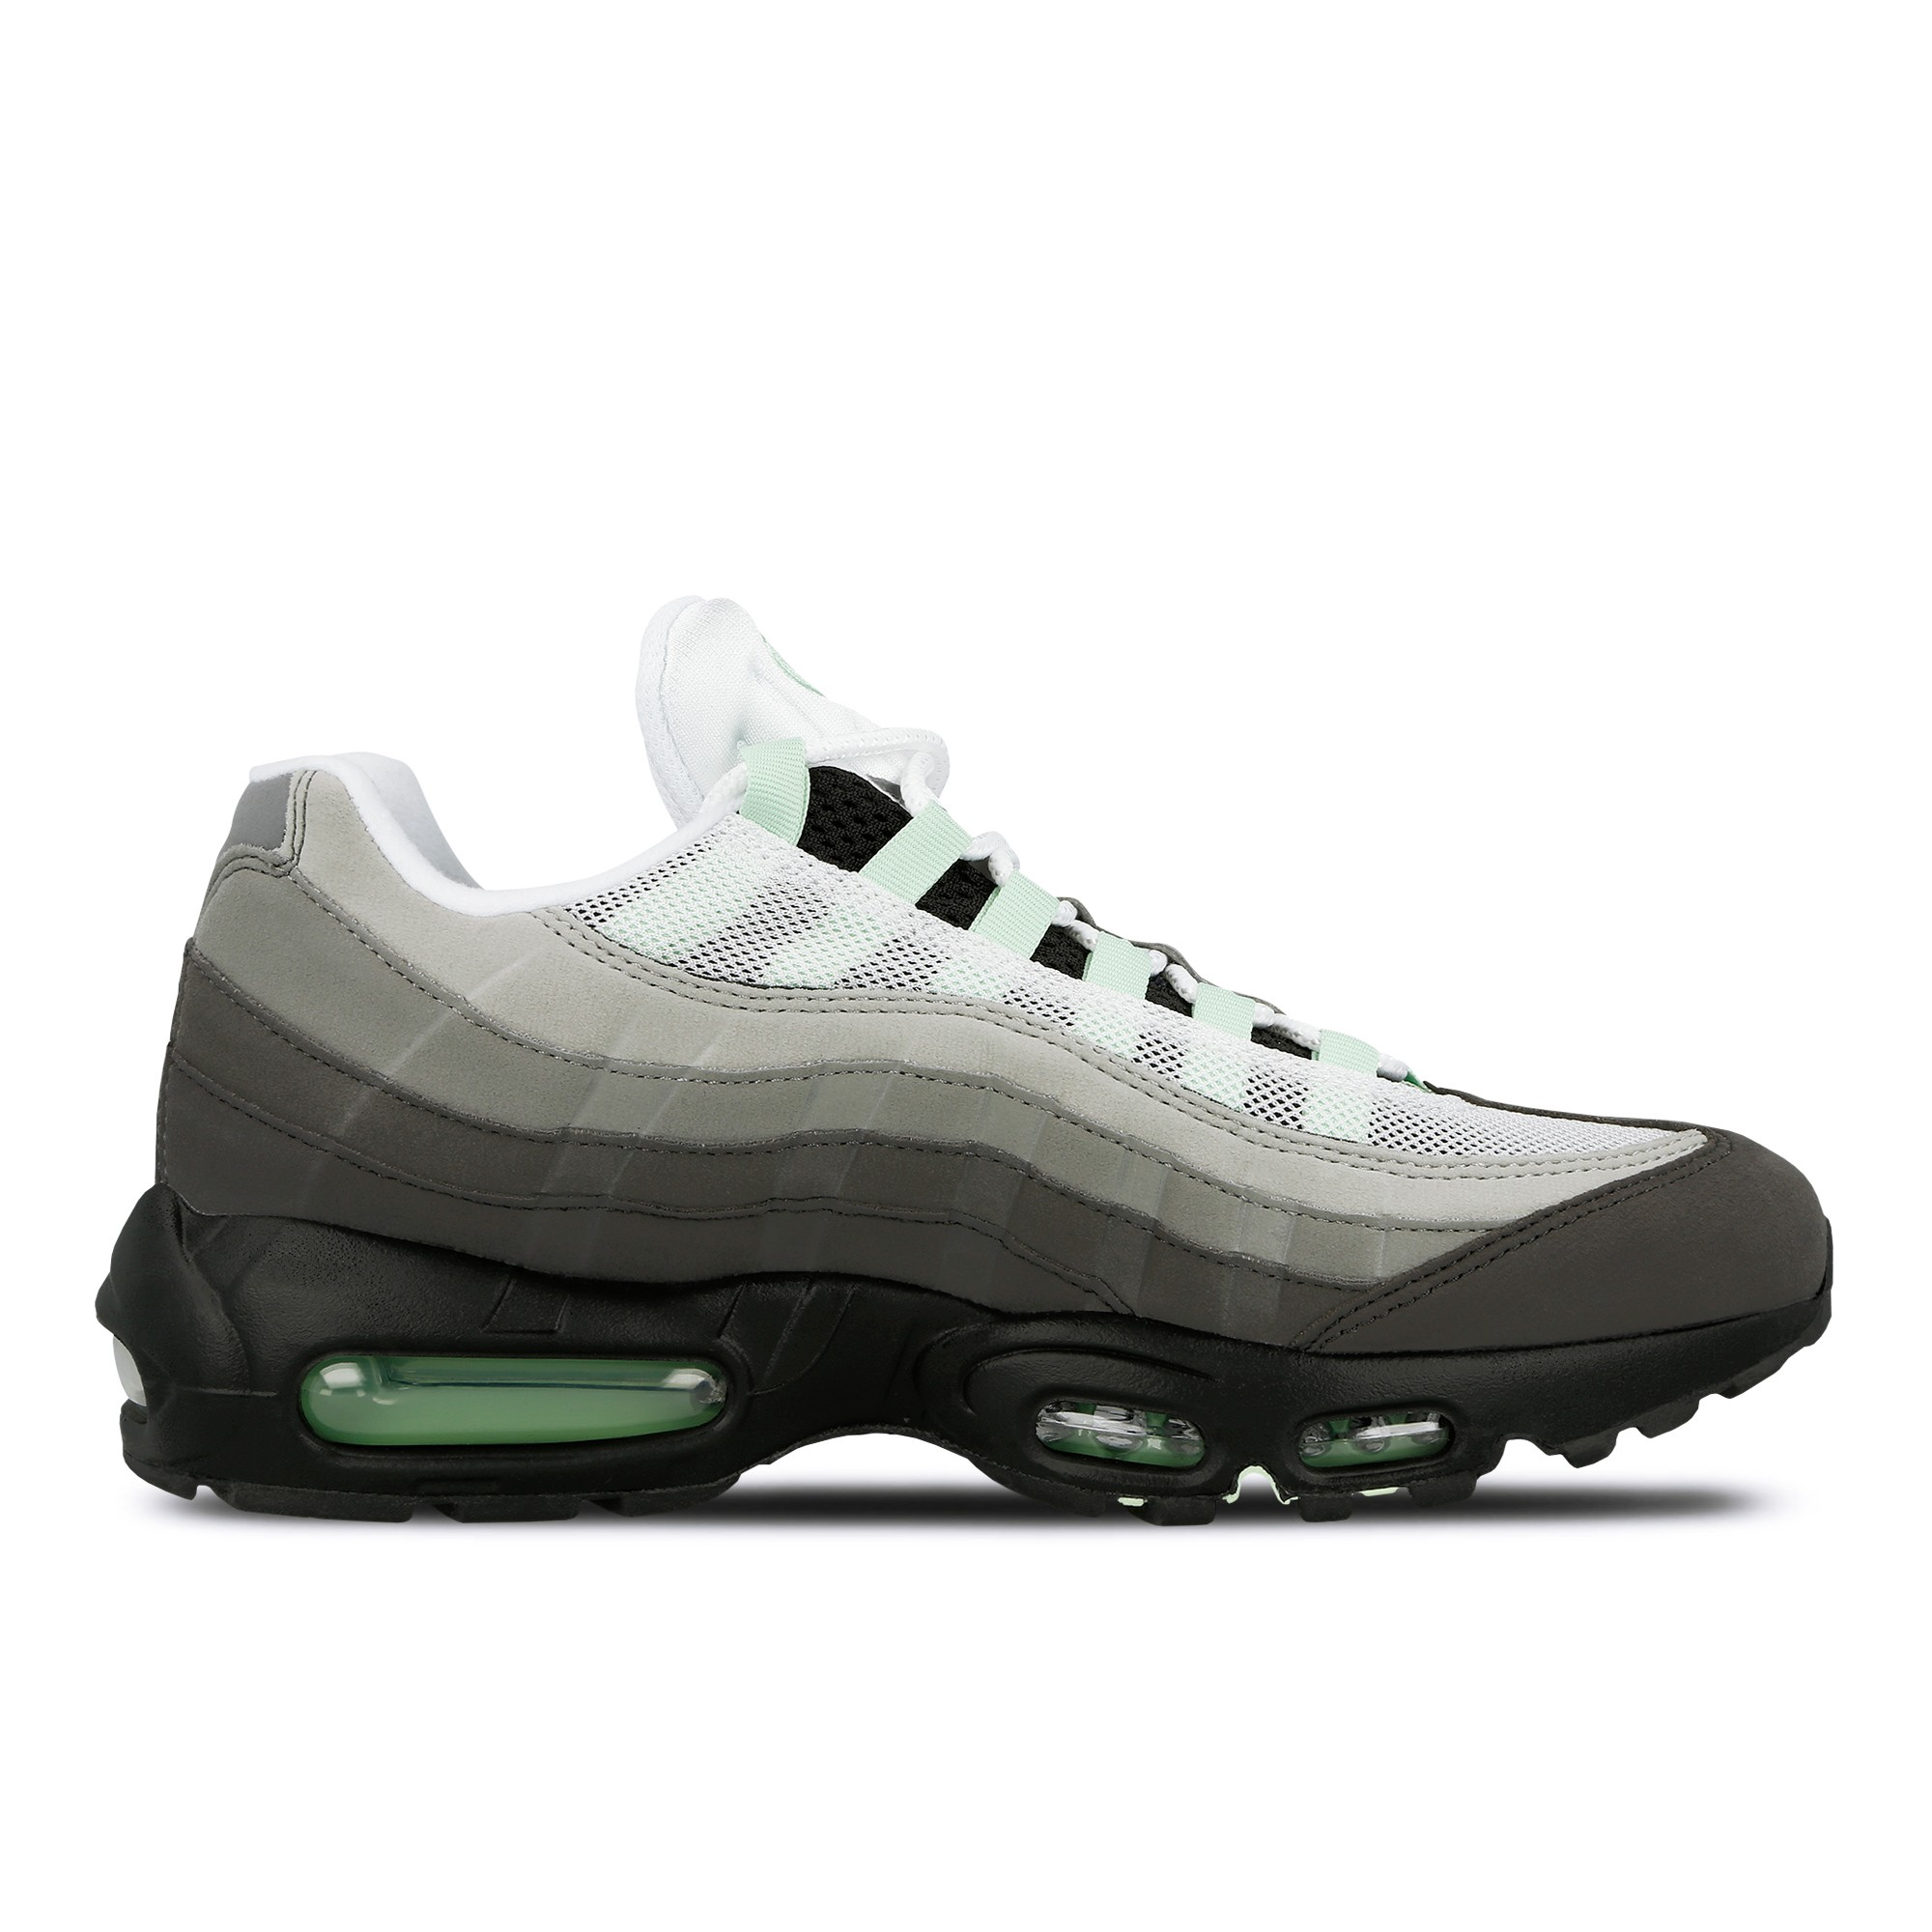 Nike Air Max 95 Wolf Grey-Mint Green